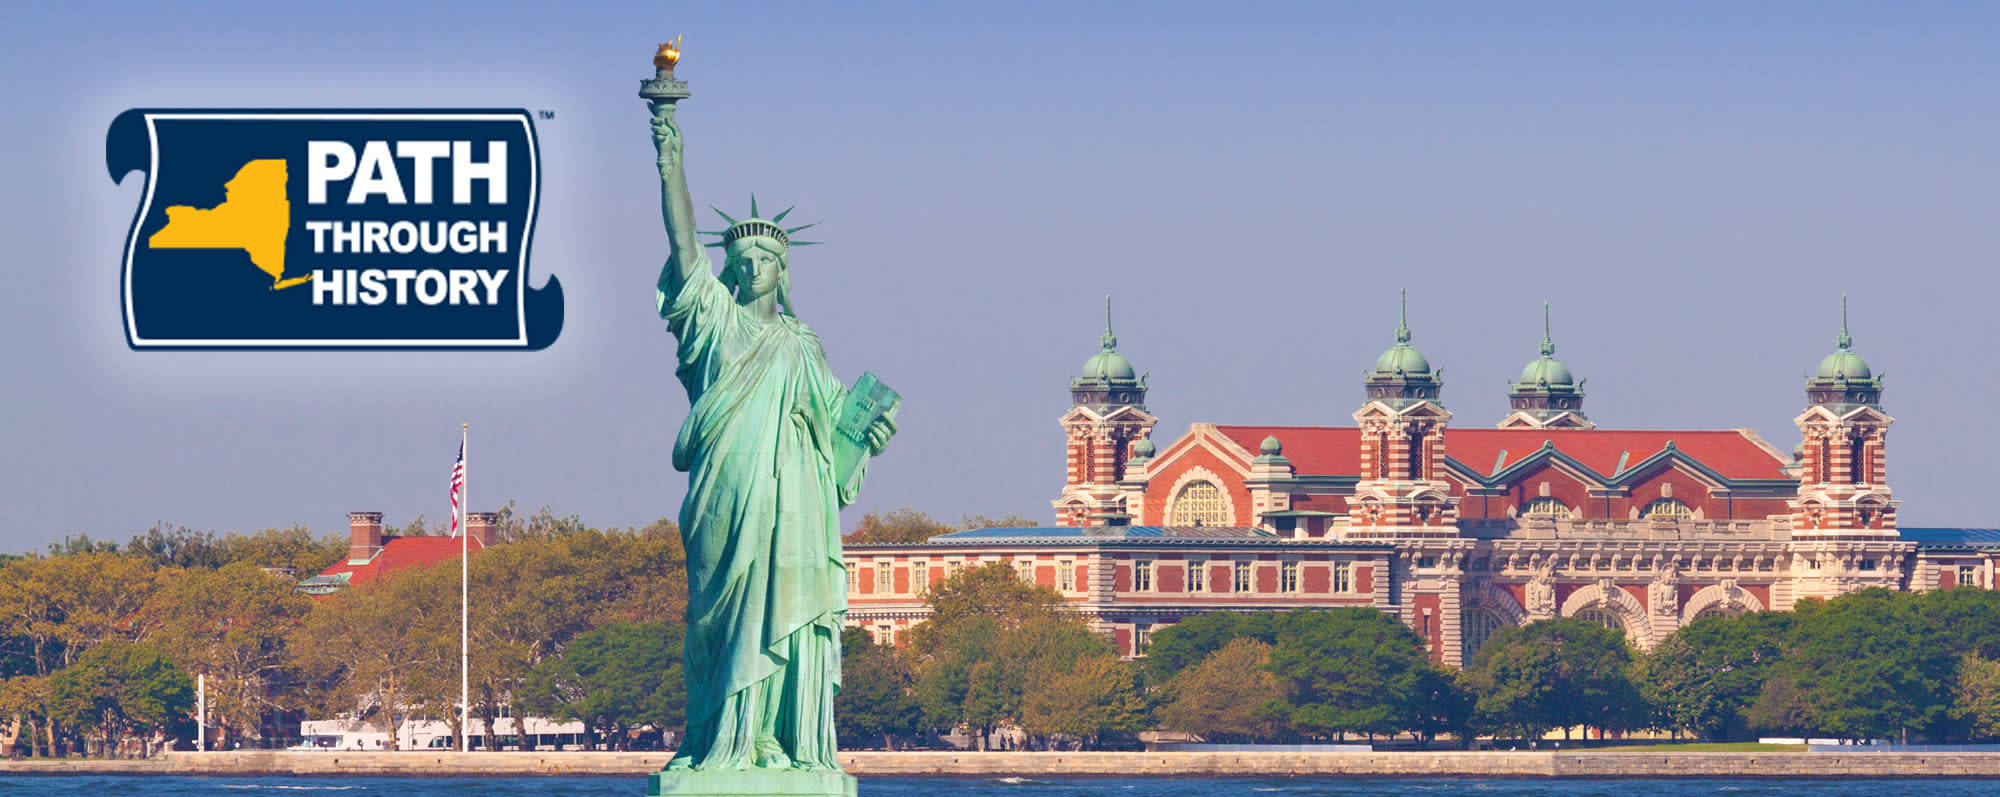 The Path Through History logo on a photo with the Statue of Liberty and Ellis Island